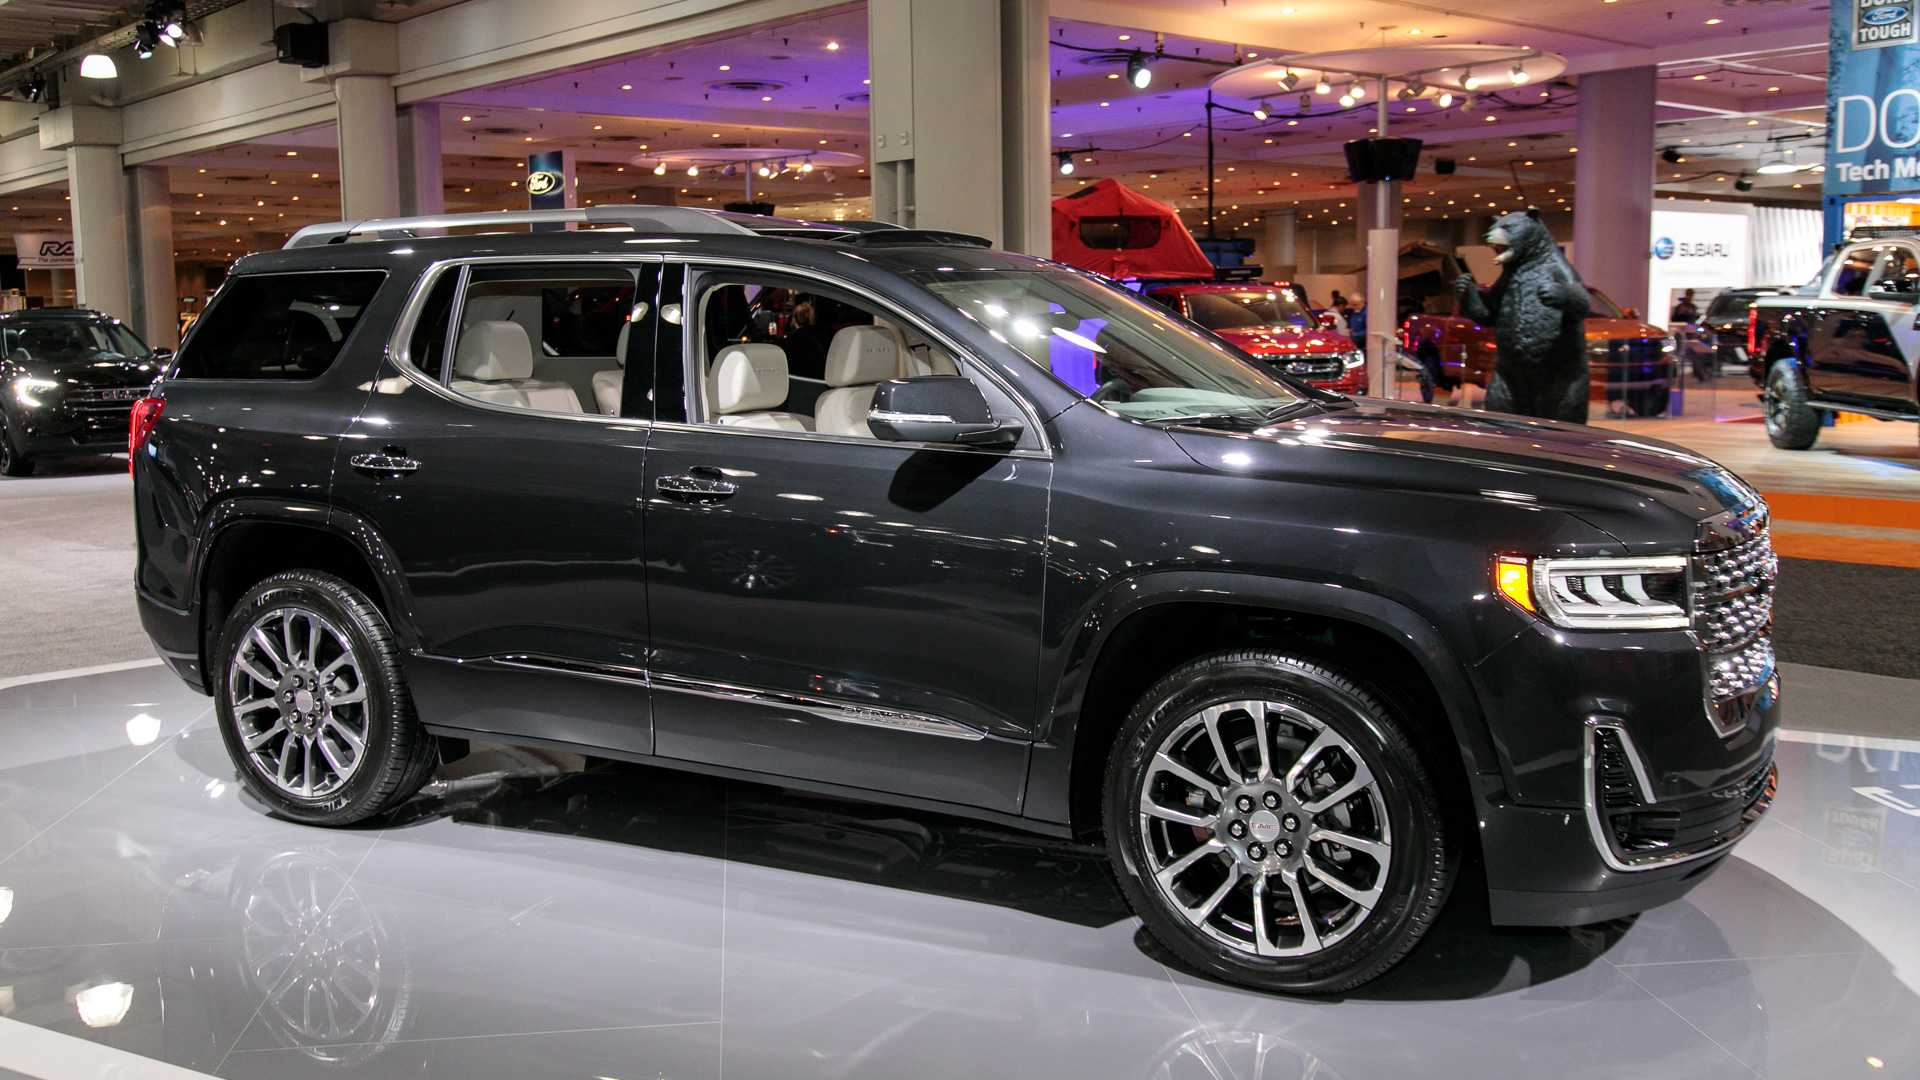 41 New Gmc Acadia 2020 Review Performance and New Engine for Gmc Acadia 2020 Review